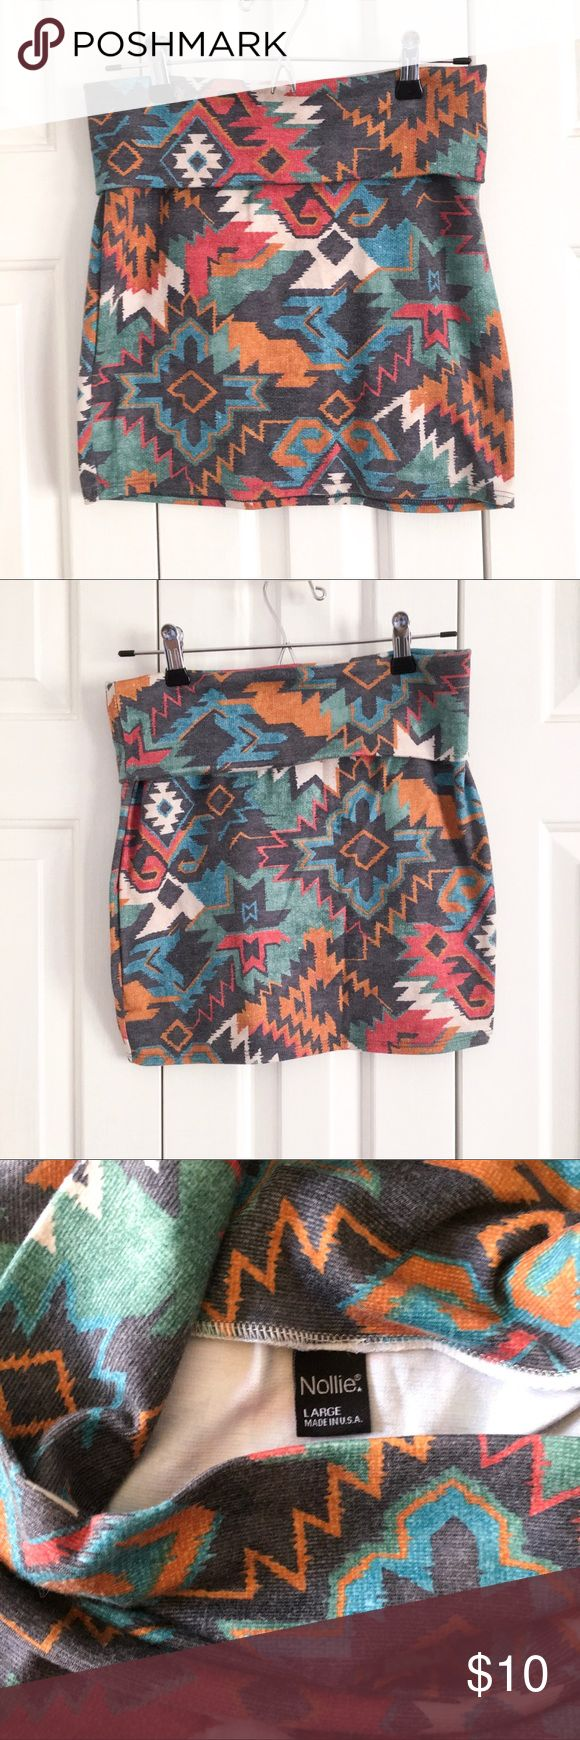 ✨B2G1Free✨ Soft Aztec Body-Con Mini Skirt Fun Aztec print body-con mini skirt made of a thicker, stretchy, very soft fabric. Adjustable top fold over, wear short or higher waisted. Excellent condition! Included in ✨B2G1Free✨ closet-wide sale! Nollie Skirts Mini